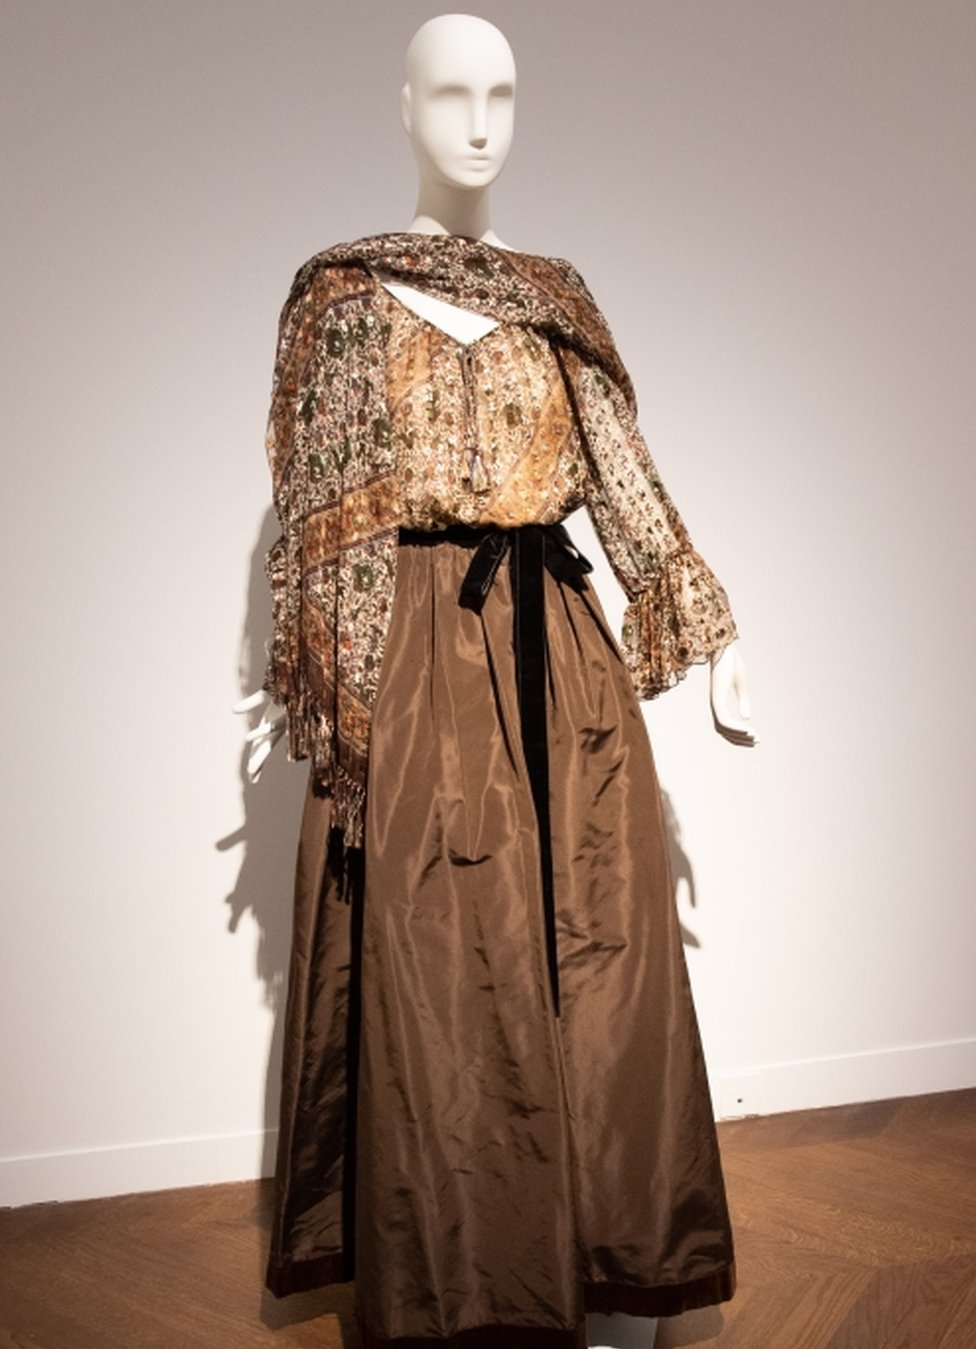 A long brown evening gown featuring a ribbon at the waist, and a wrap shawl